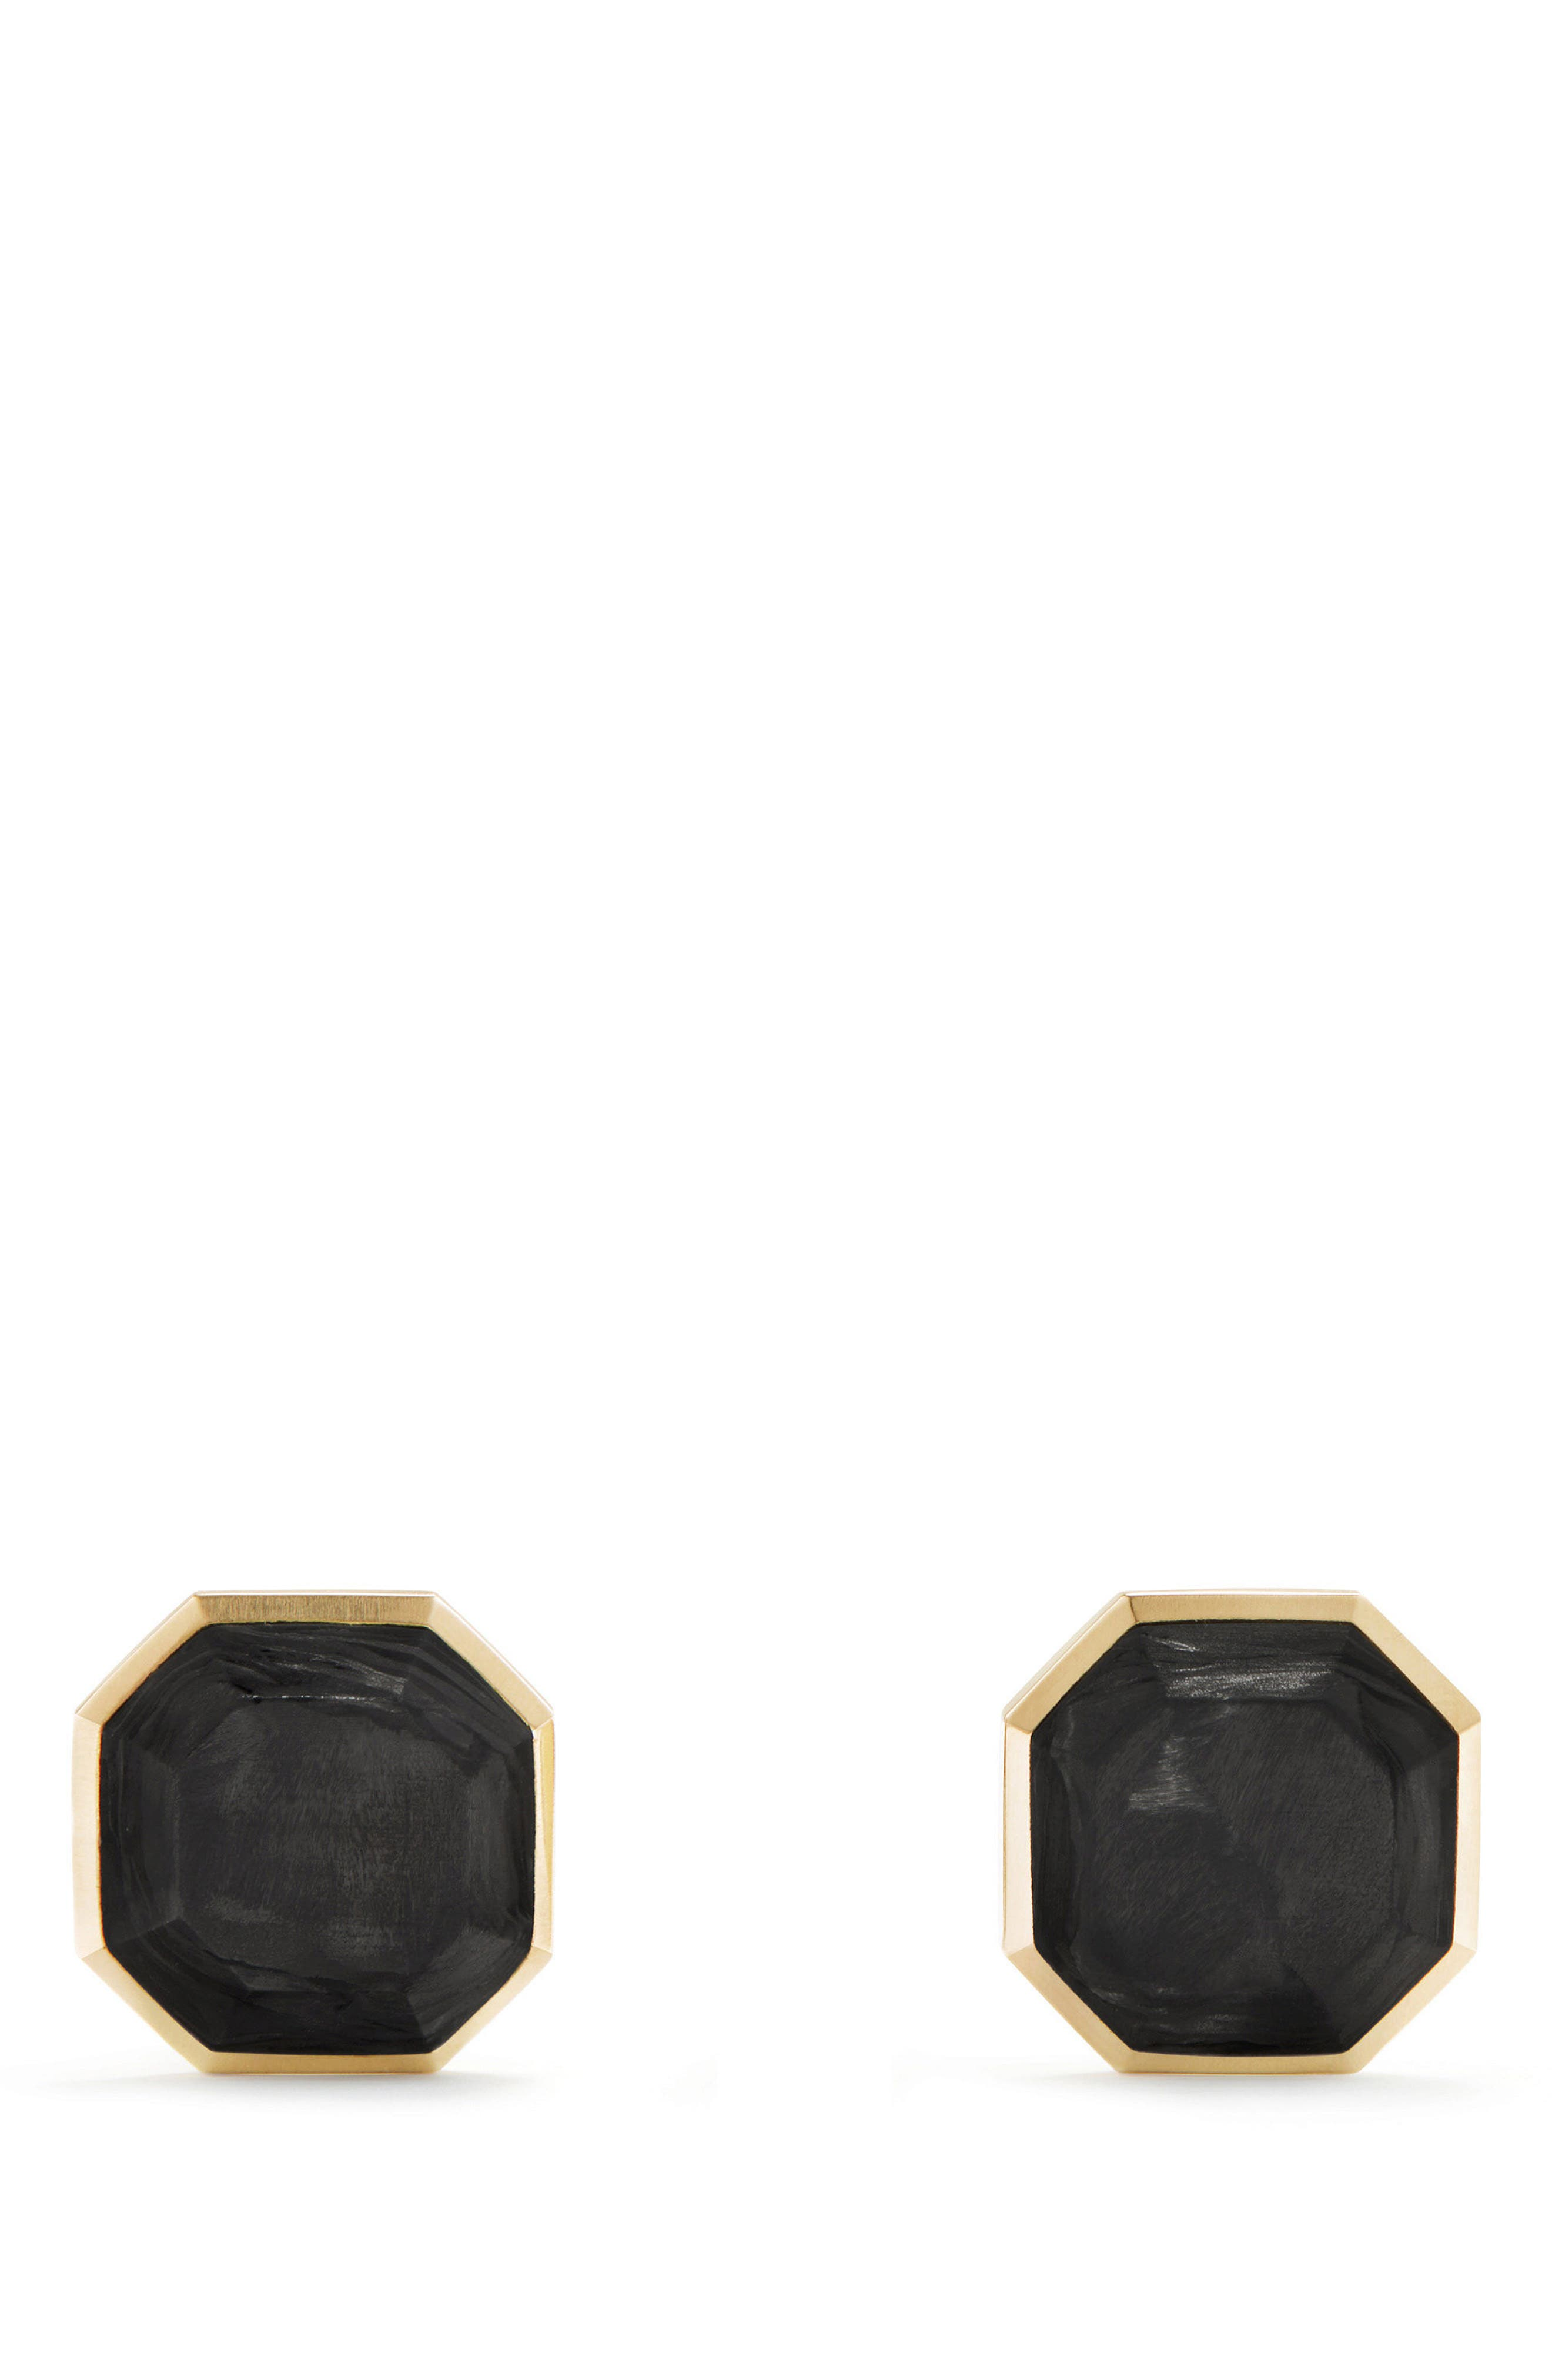 Forged Carbon Cufflinks in 18K Gold,                             Main thumbnail 1, color,                             Forged Carbon